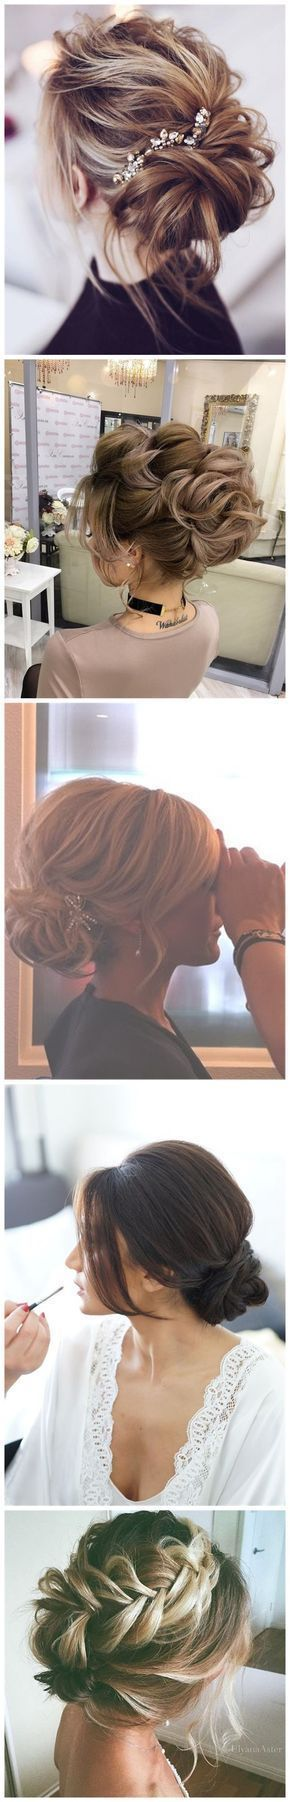 Wedding Hairstyles » Come and See why You Can't Miss These 30 Wedding Updos for Long Hair❤️ See more: http://www.weddinginclude.com/2017/02/come-and-see-why-you-cant-miss-these-wedding-updos-for-long-hair/ #haircutsforlonghair